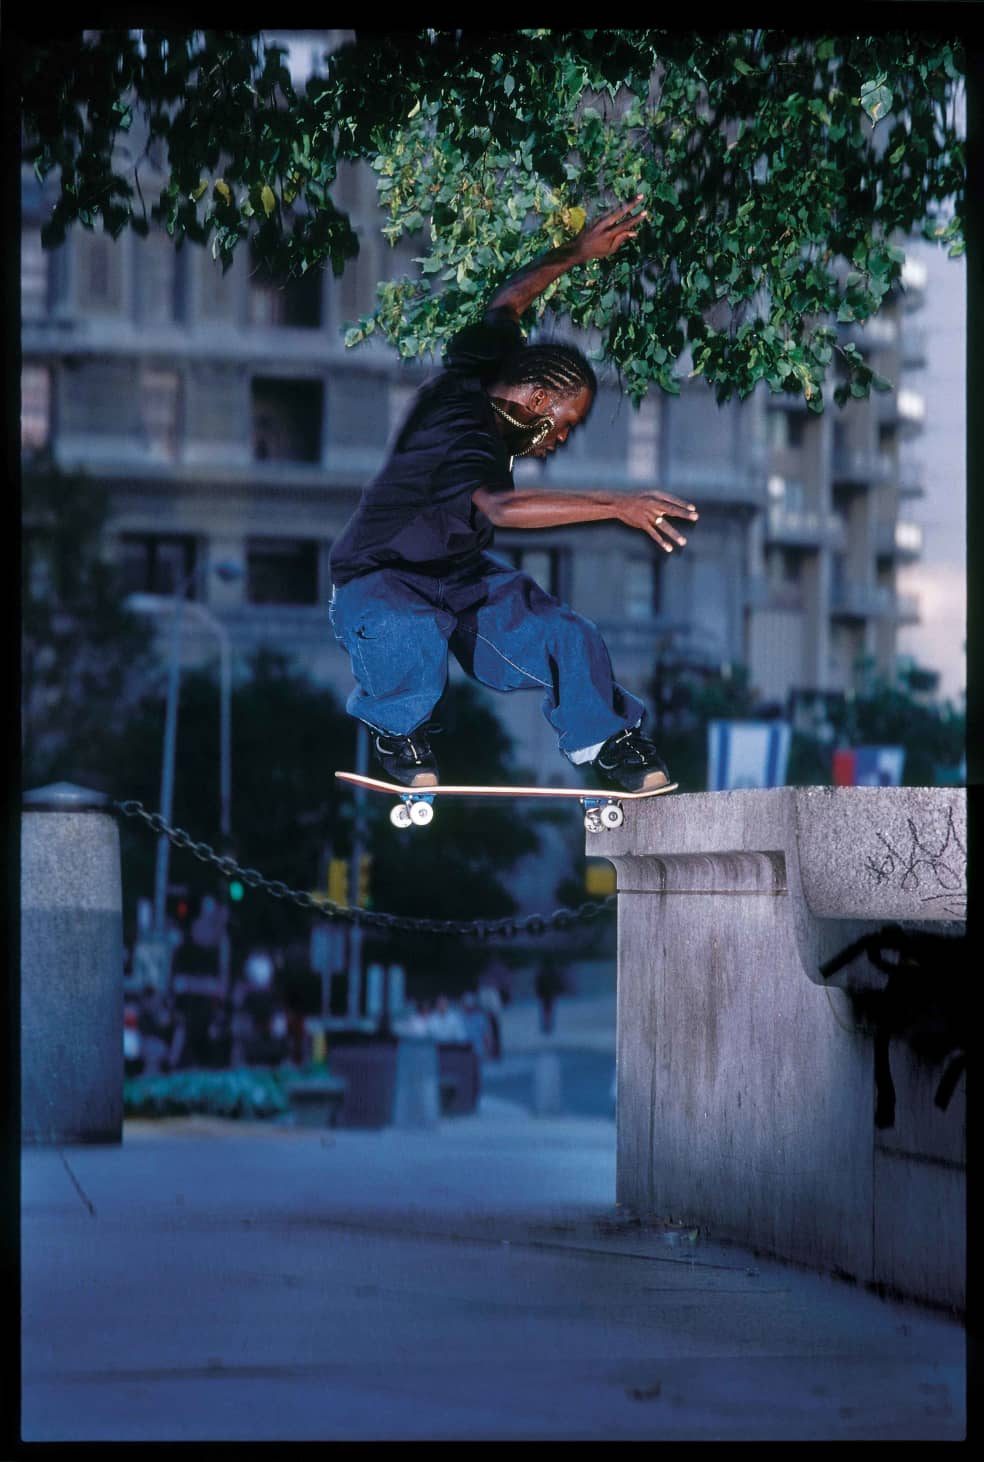 Stevie Williams, Love Park. 2000. | Photograph by Mike Blabac 2